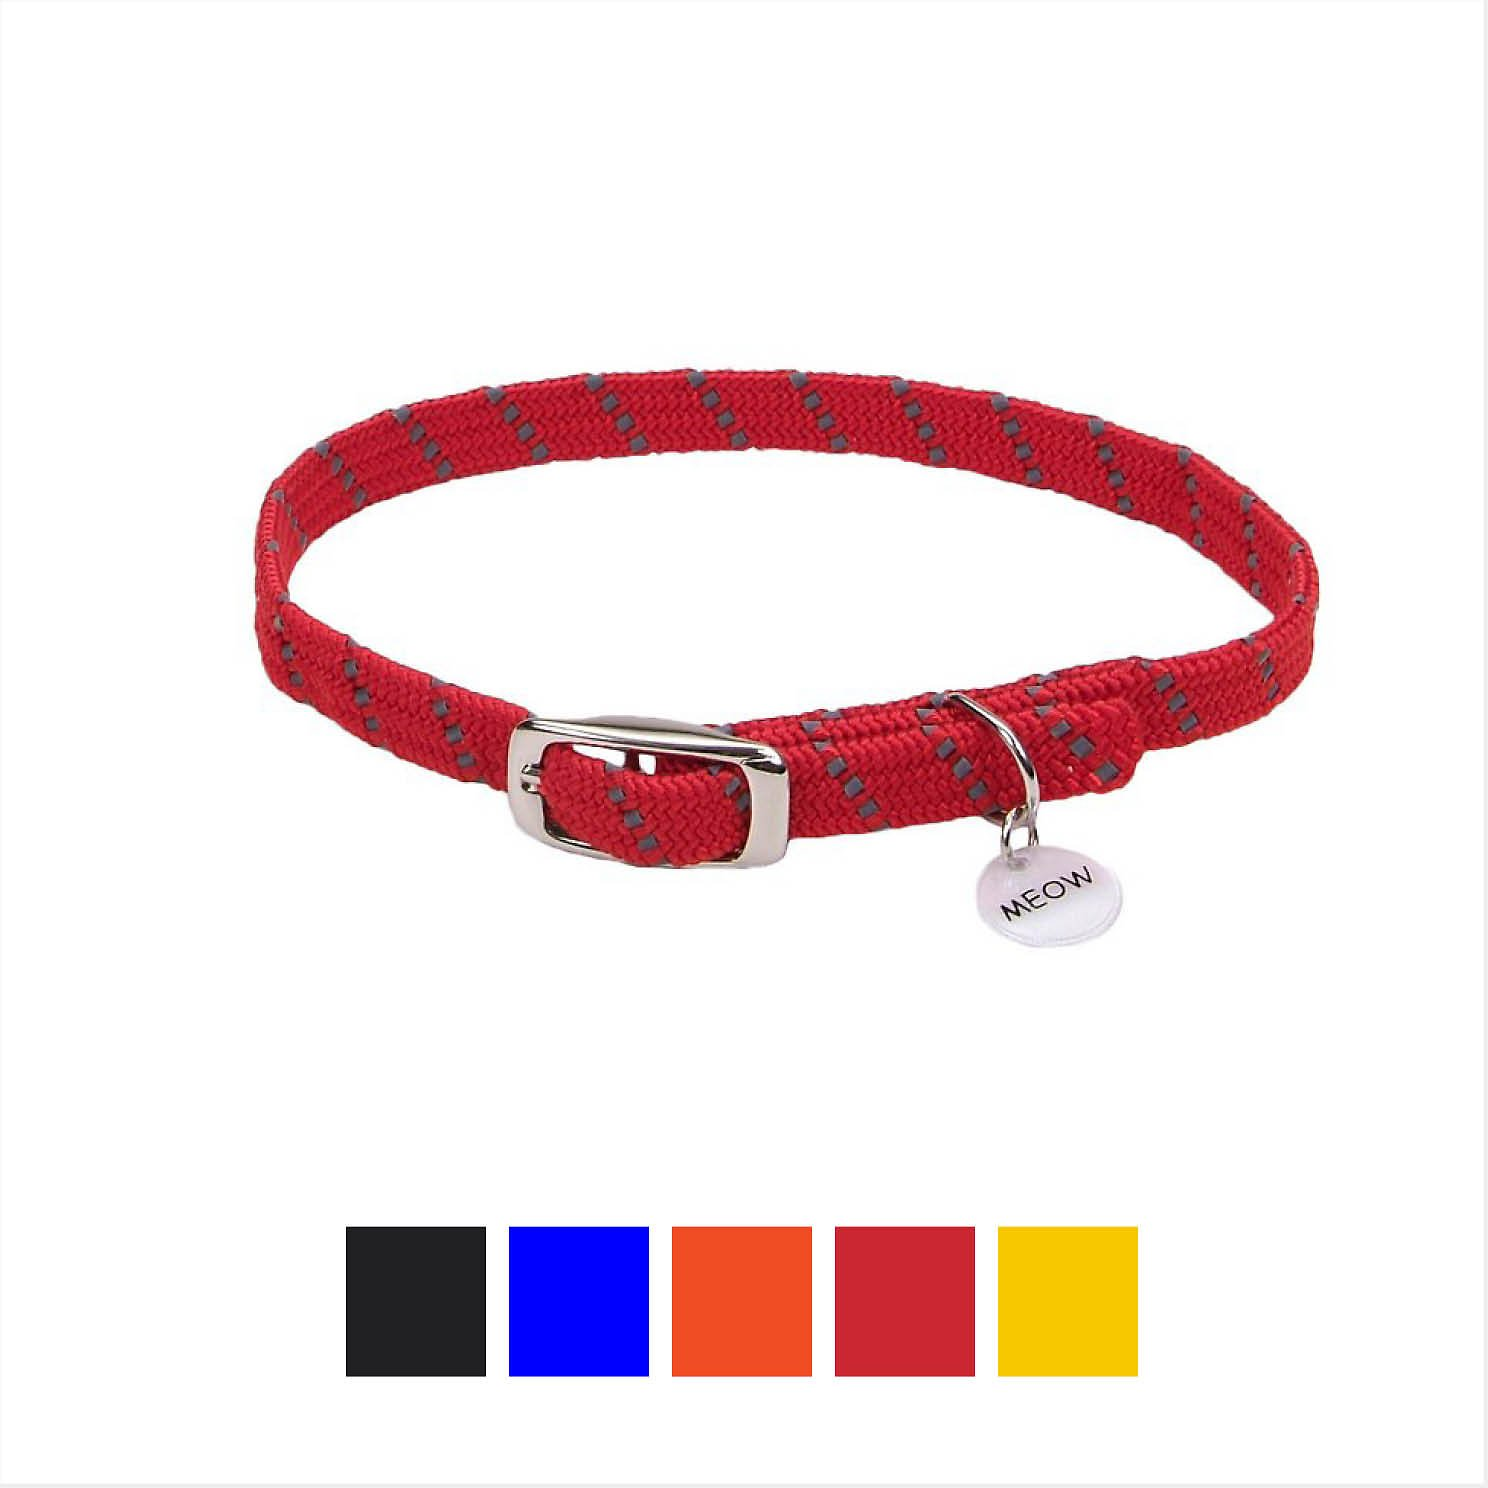 ElastaCat Reflective Safety Stretch Cat Collar, Red, 10-in